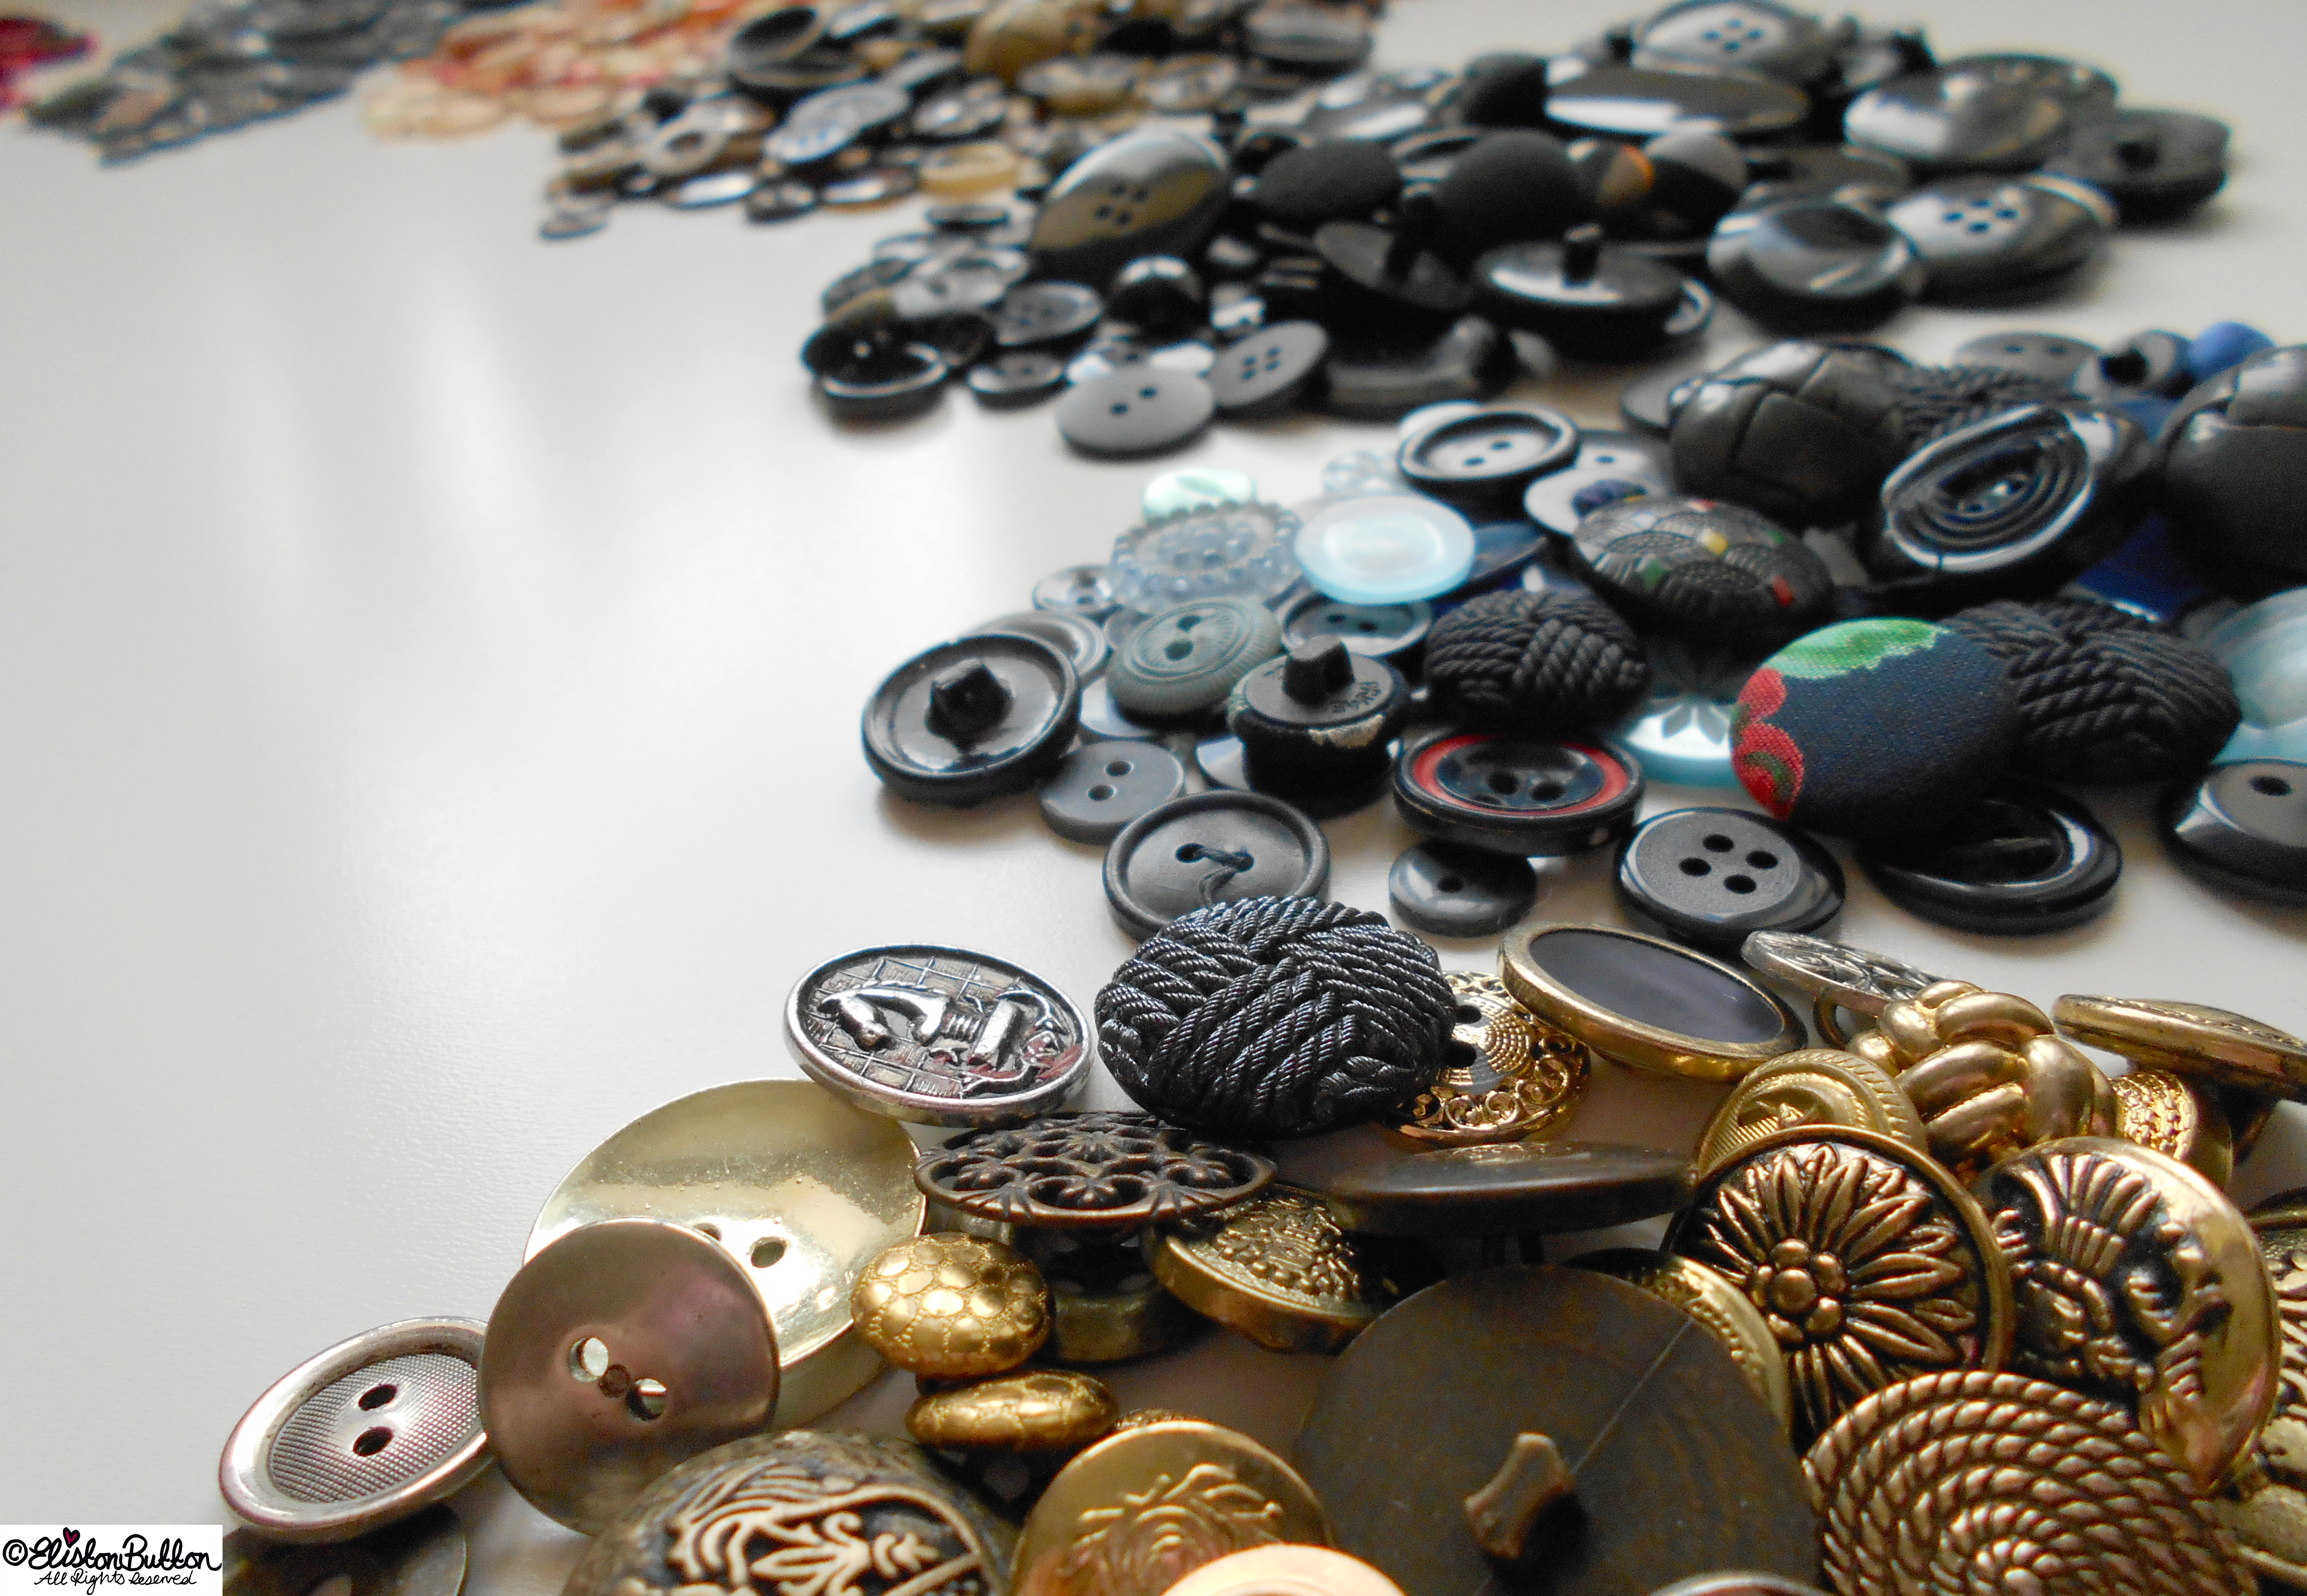 Metal and Plastic Button Collection - Workspace Wednesday - Button Party at www.elistonbutton.com - Eliston Button - That Crafty Kid – Art, Design, Craft & Adventure.